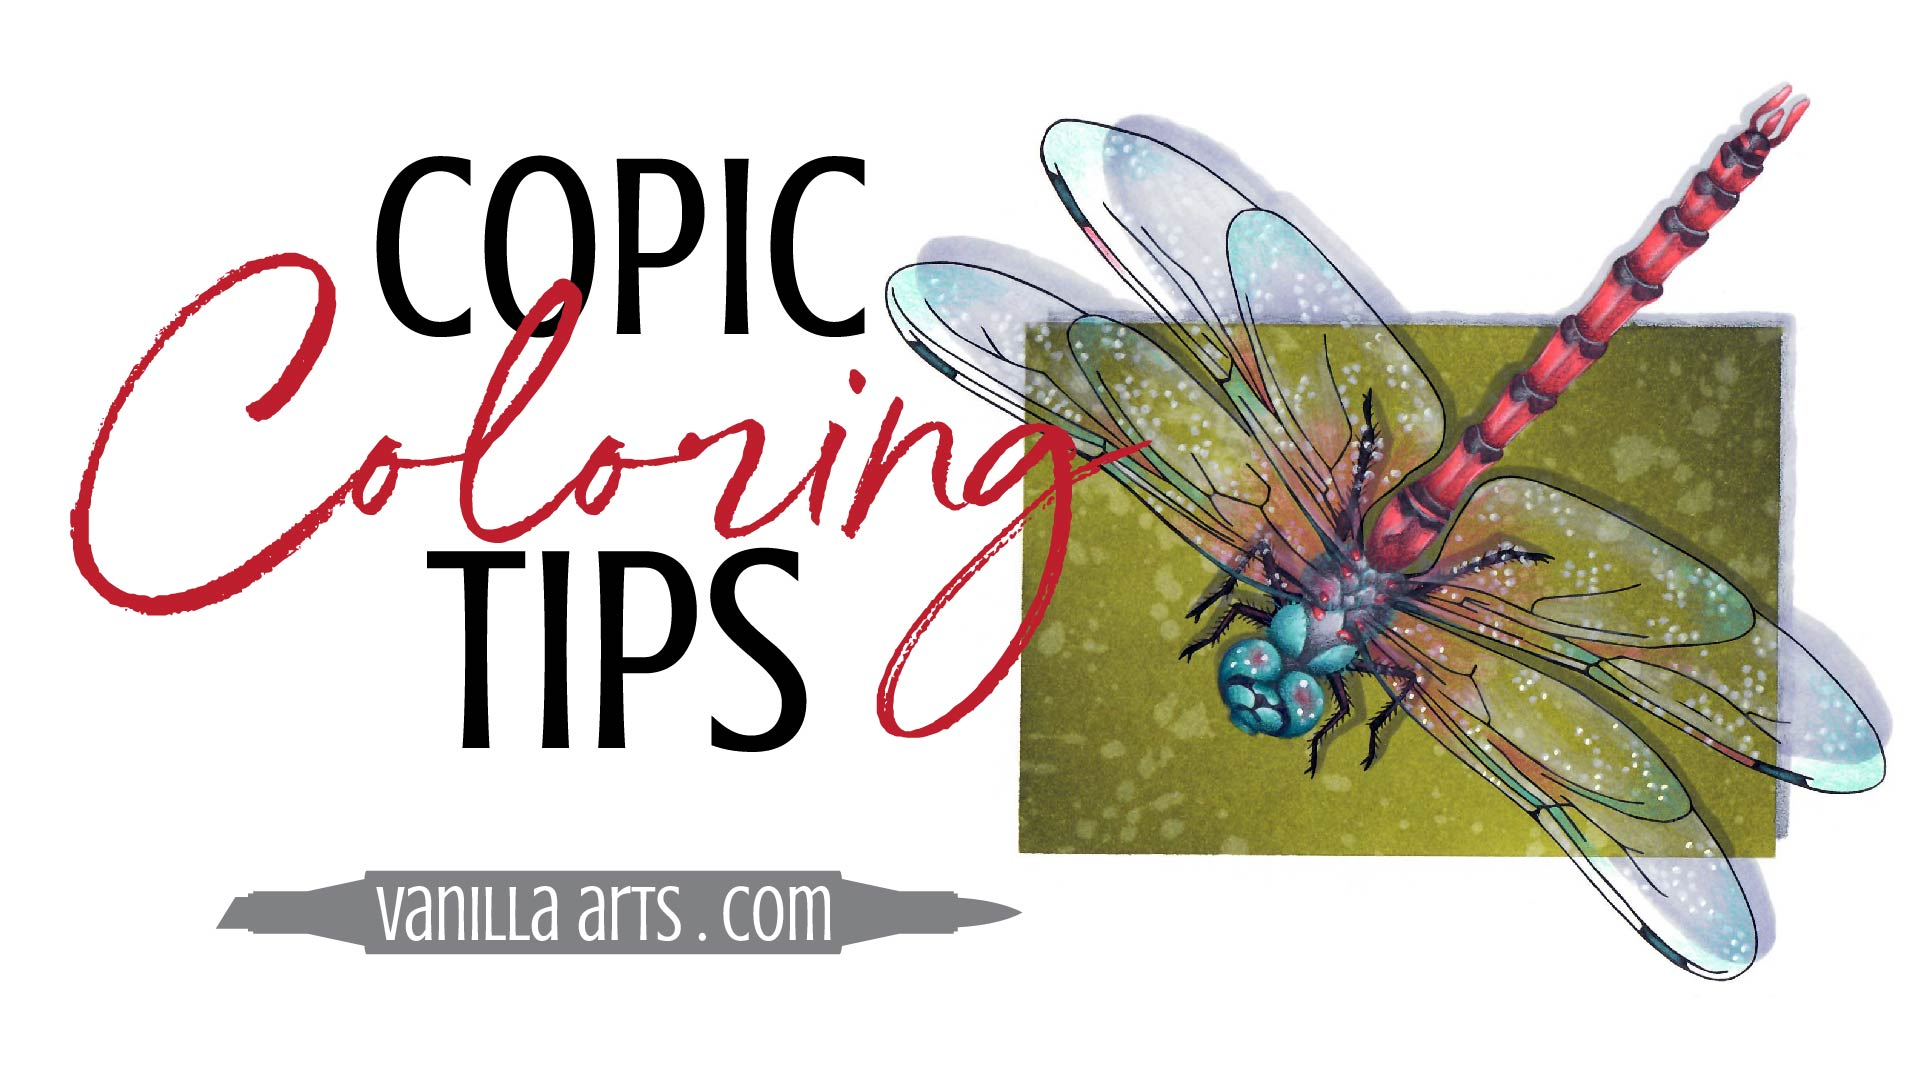 Copic Marker speed coloring and tips by Amy Shulke of Vanilla Arts Company. Advance your coloring and change the way you think about Copic Markers, colored pencils. You can color with realism! | VanillaArts.com | #copicmarker #coloredpencil #coloring #howtocolor #realisticcoloring